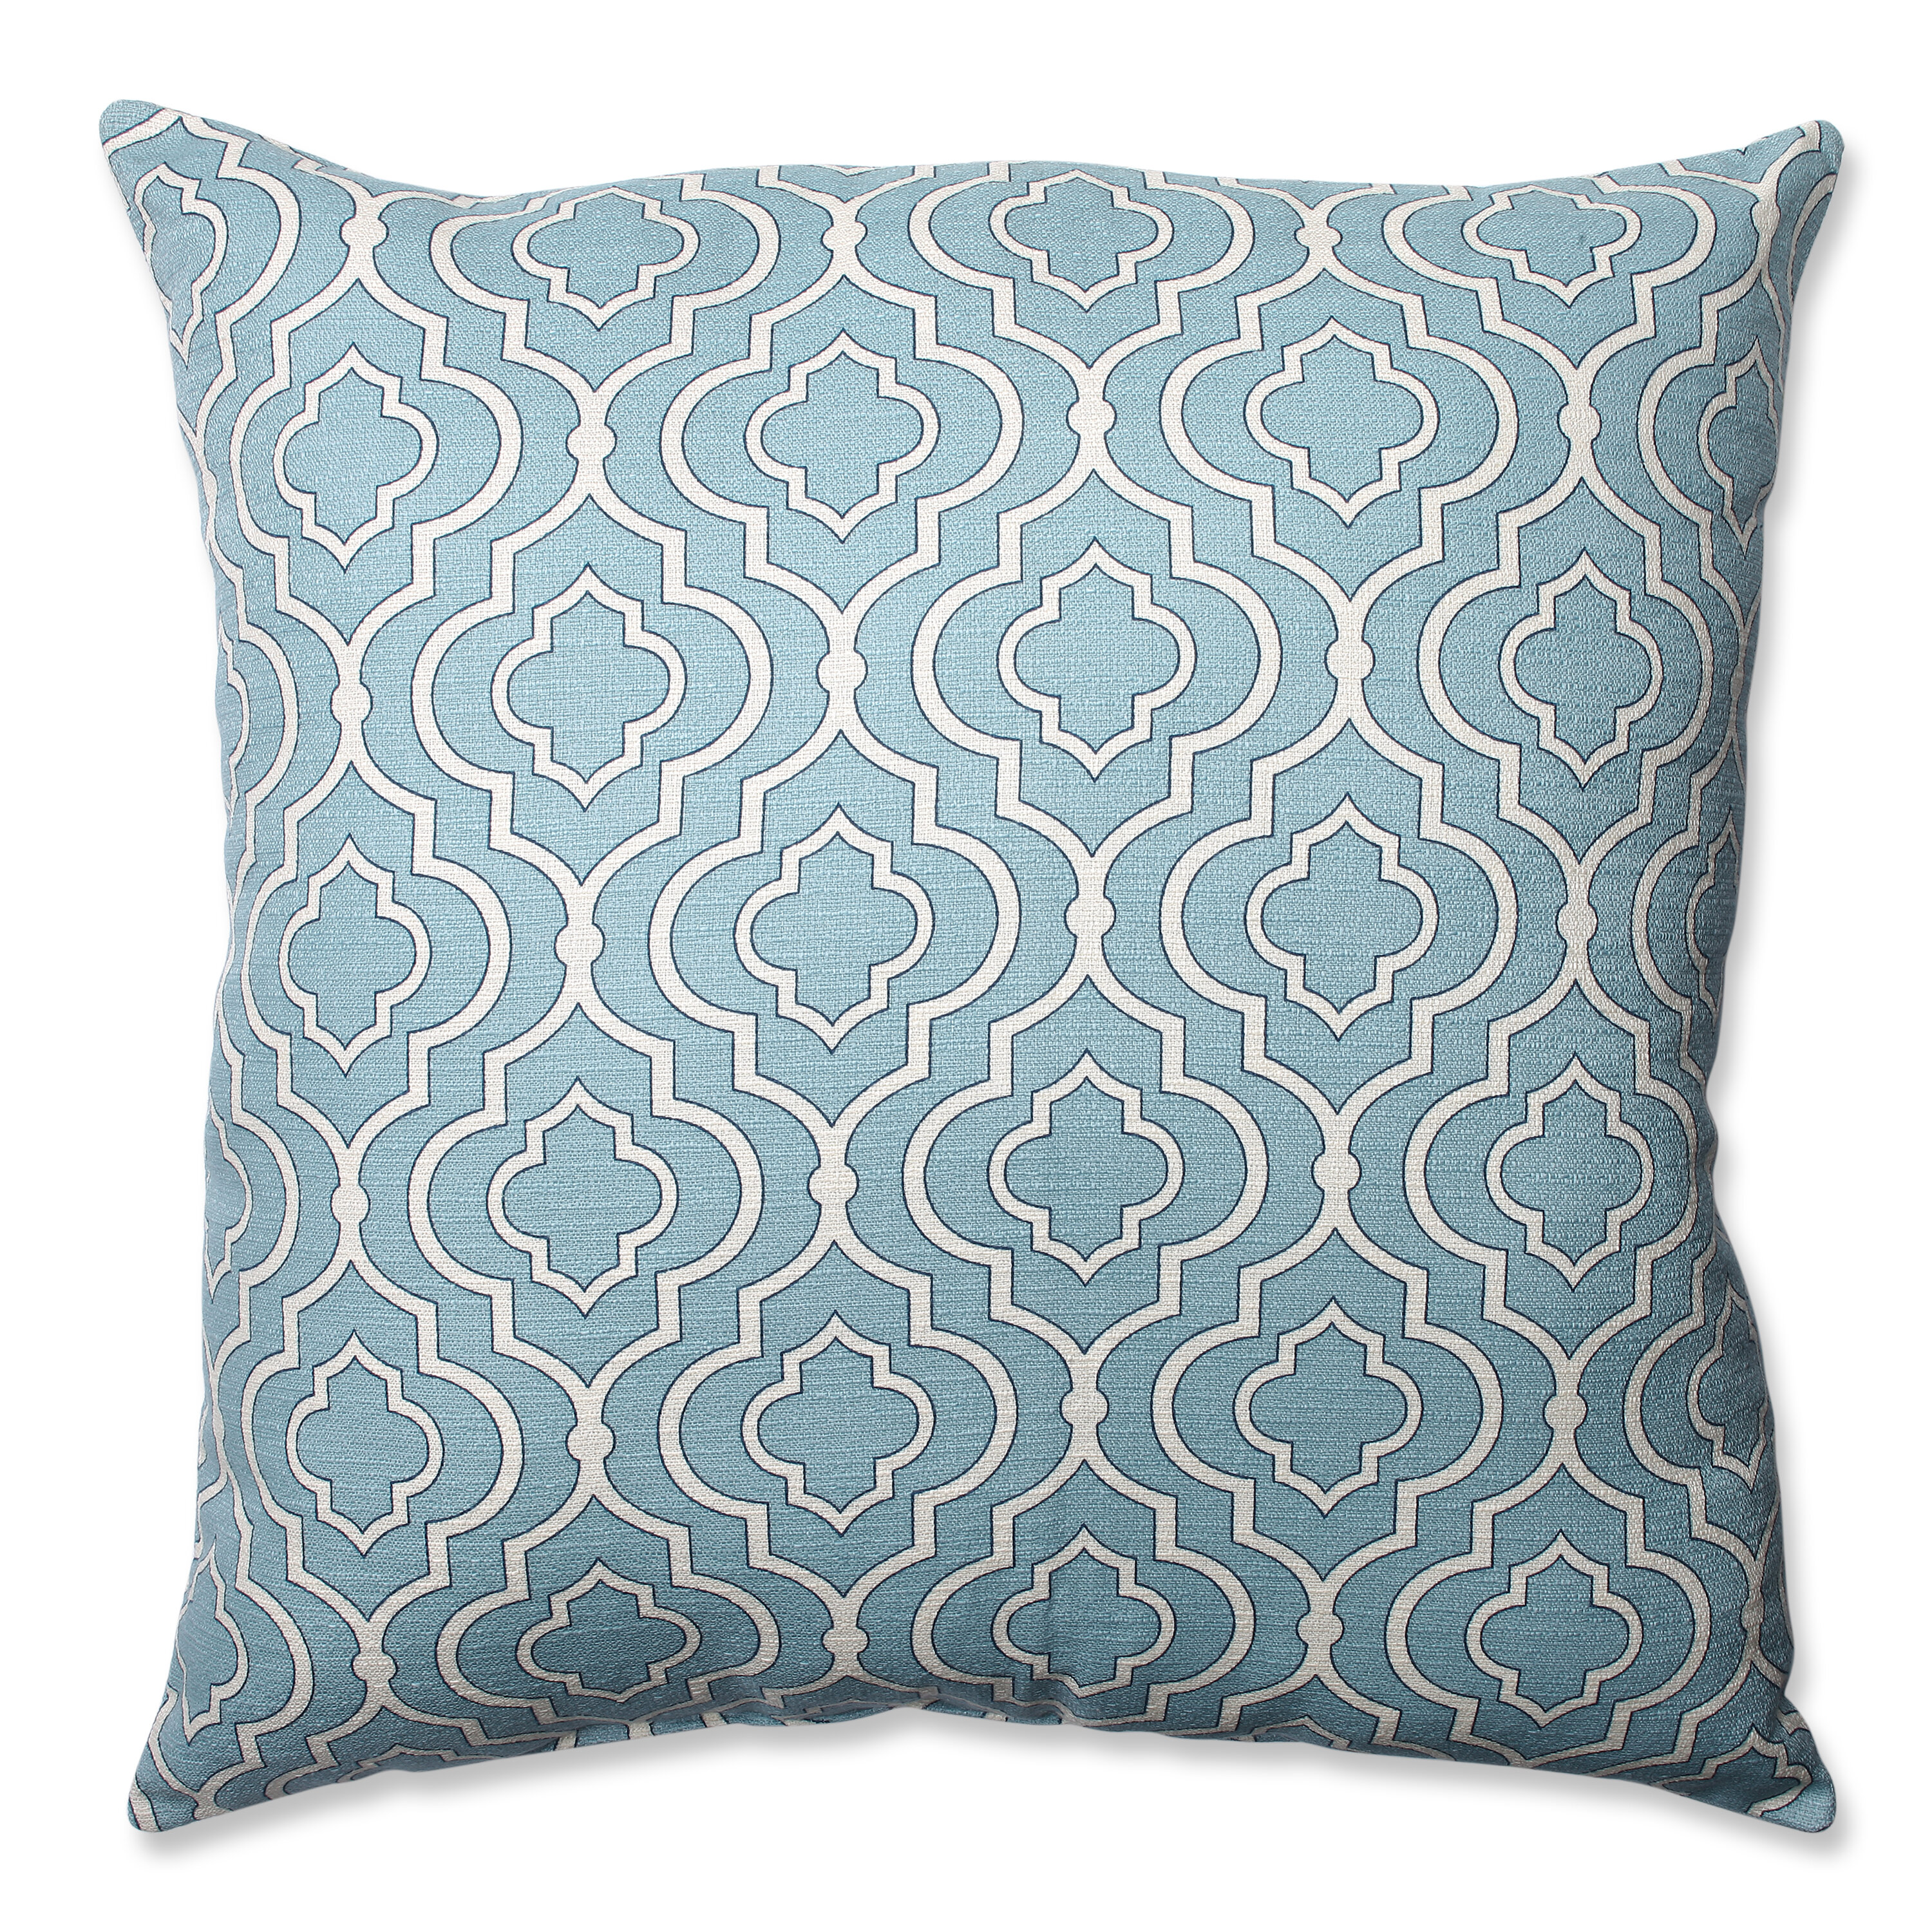 Decorative Pillows Recommendations : Charlton Home Carlyle 100% Cotton Throw Pillow Wayfair